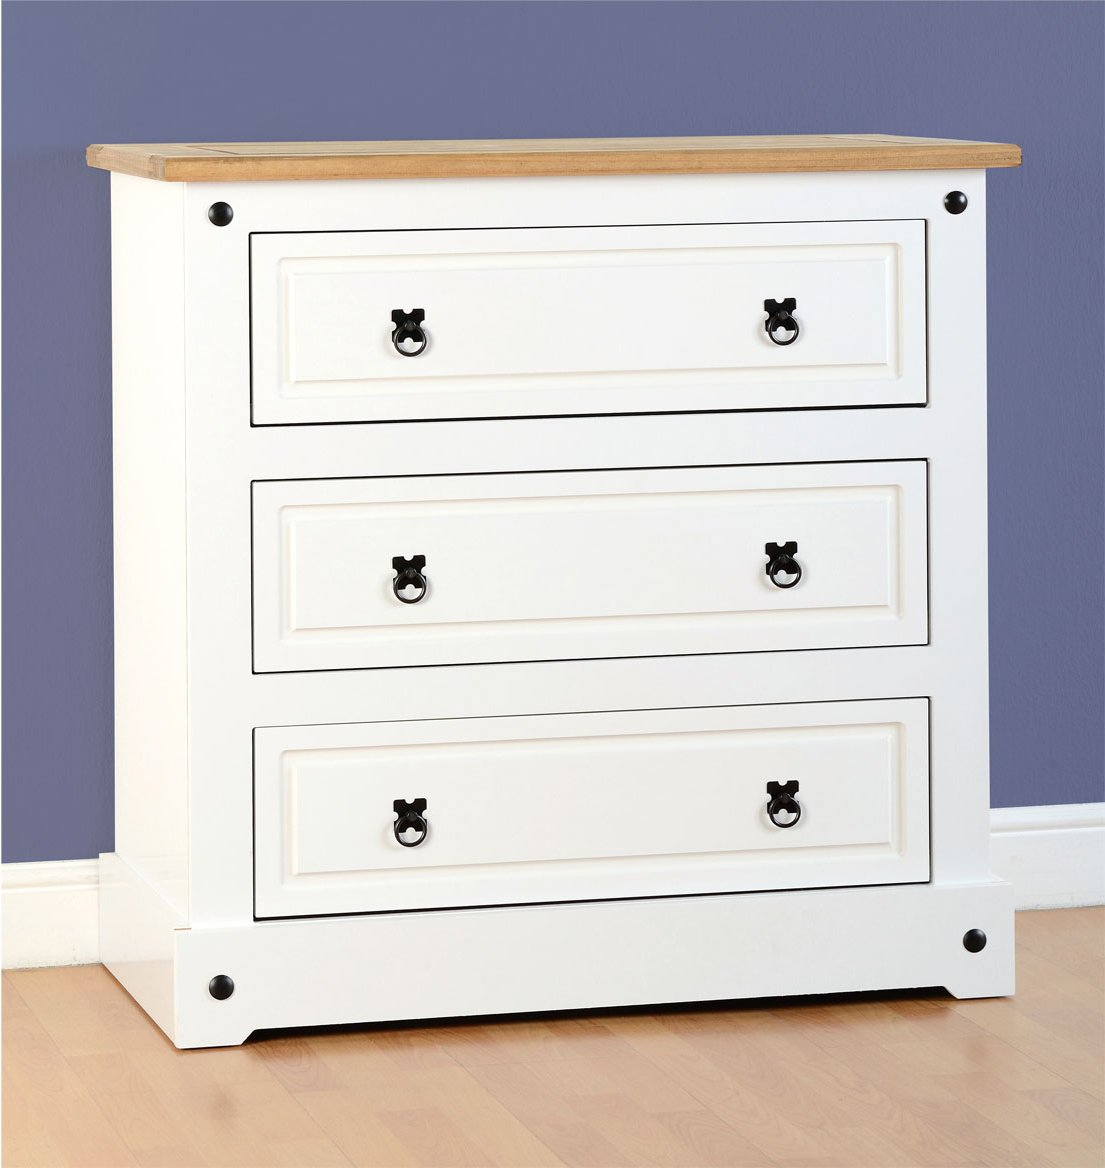 Valufurniture 100 102 061 Chests Of Drawers